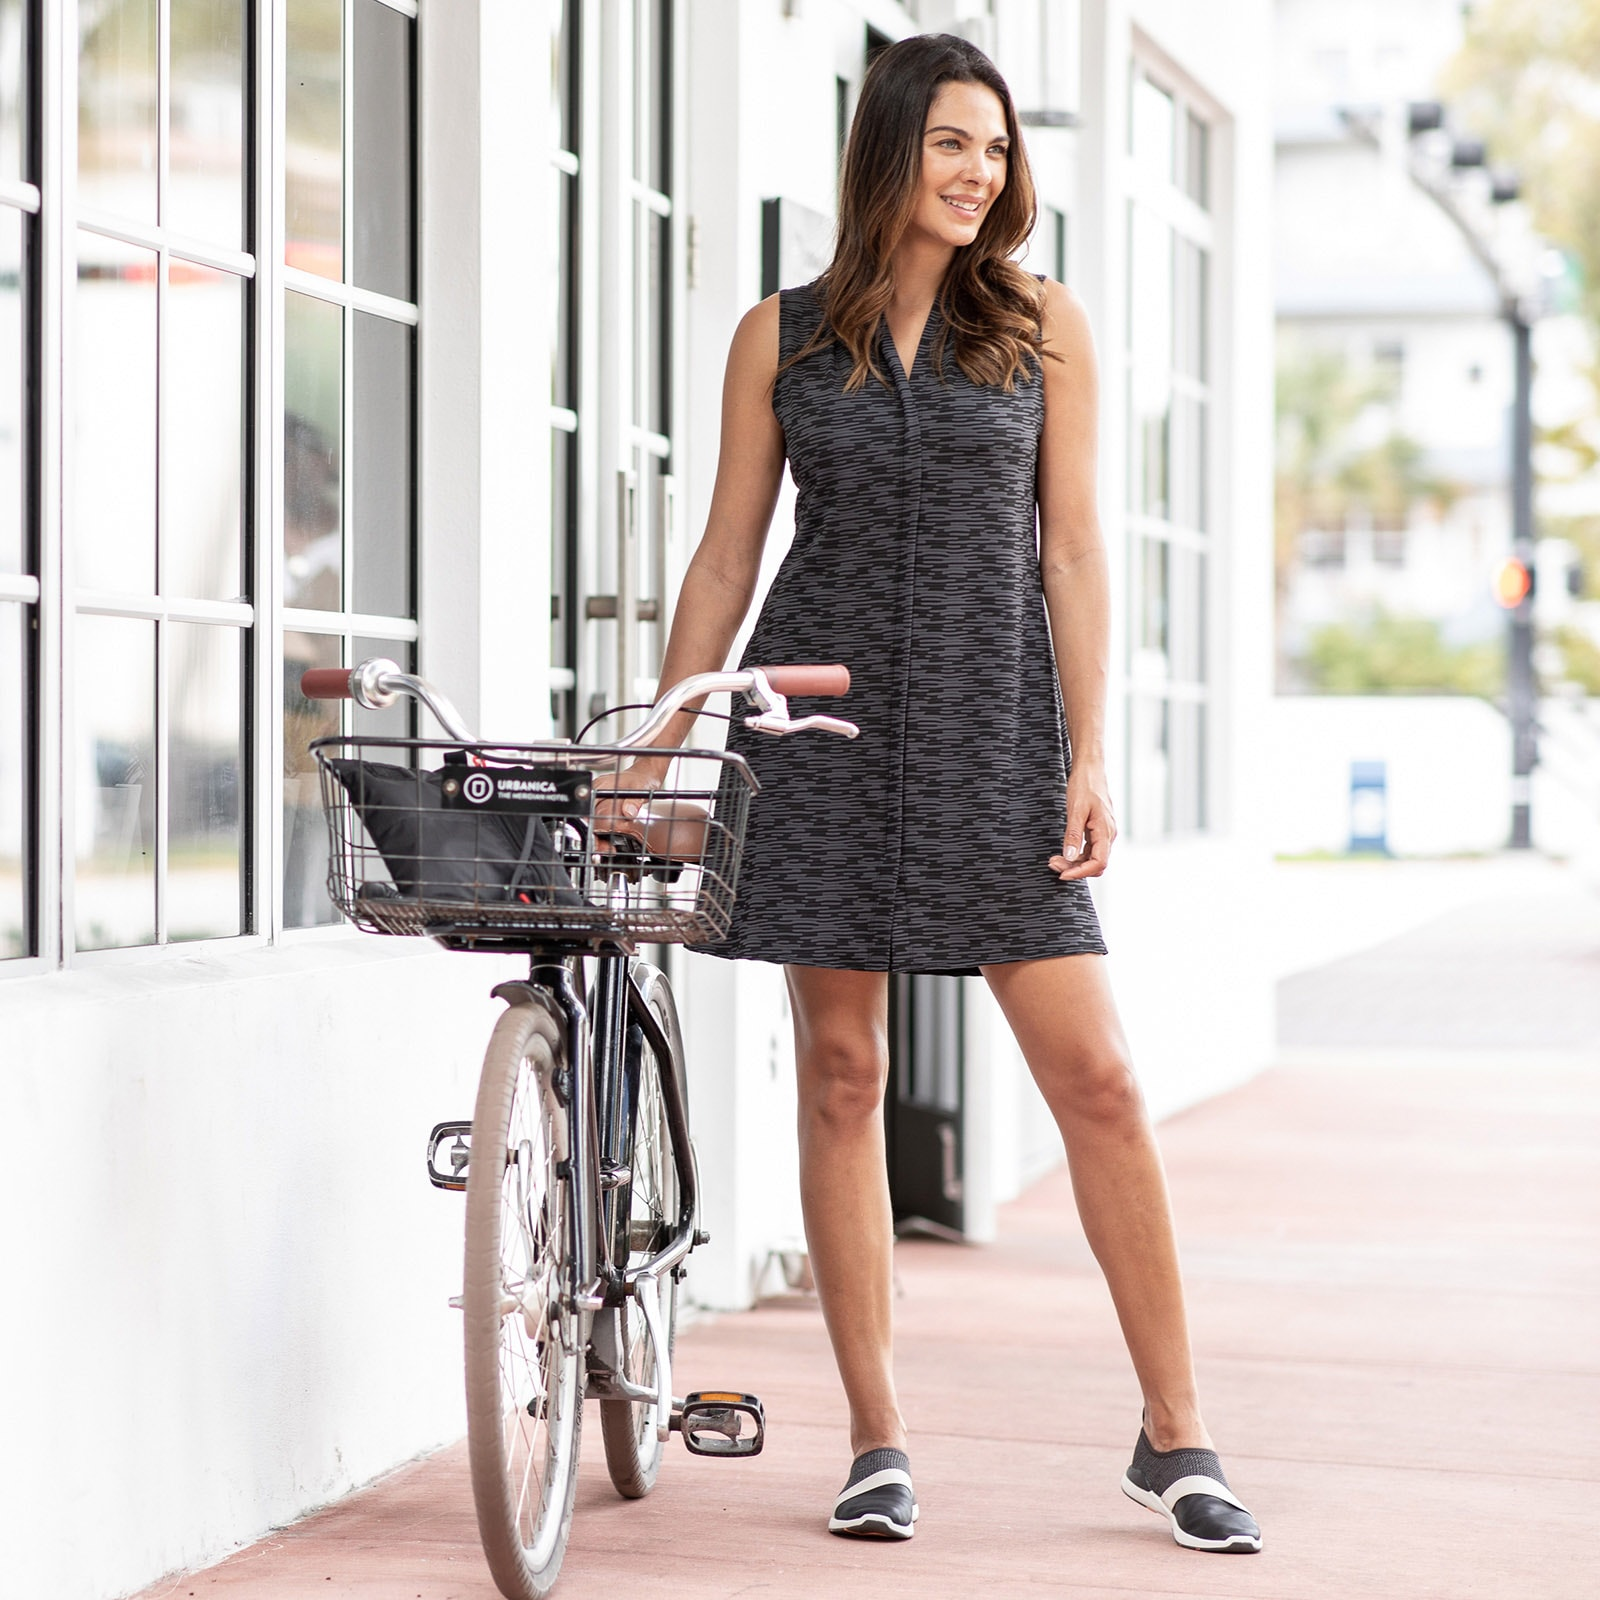 Stylish cycling gift idea, Terry Transit dress